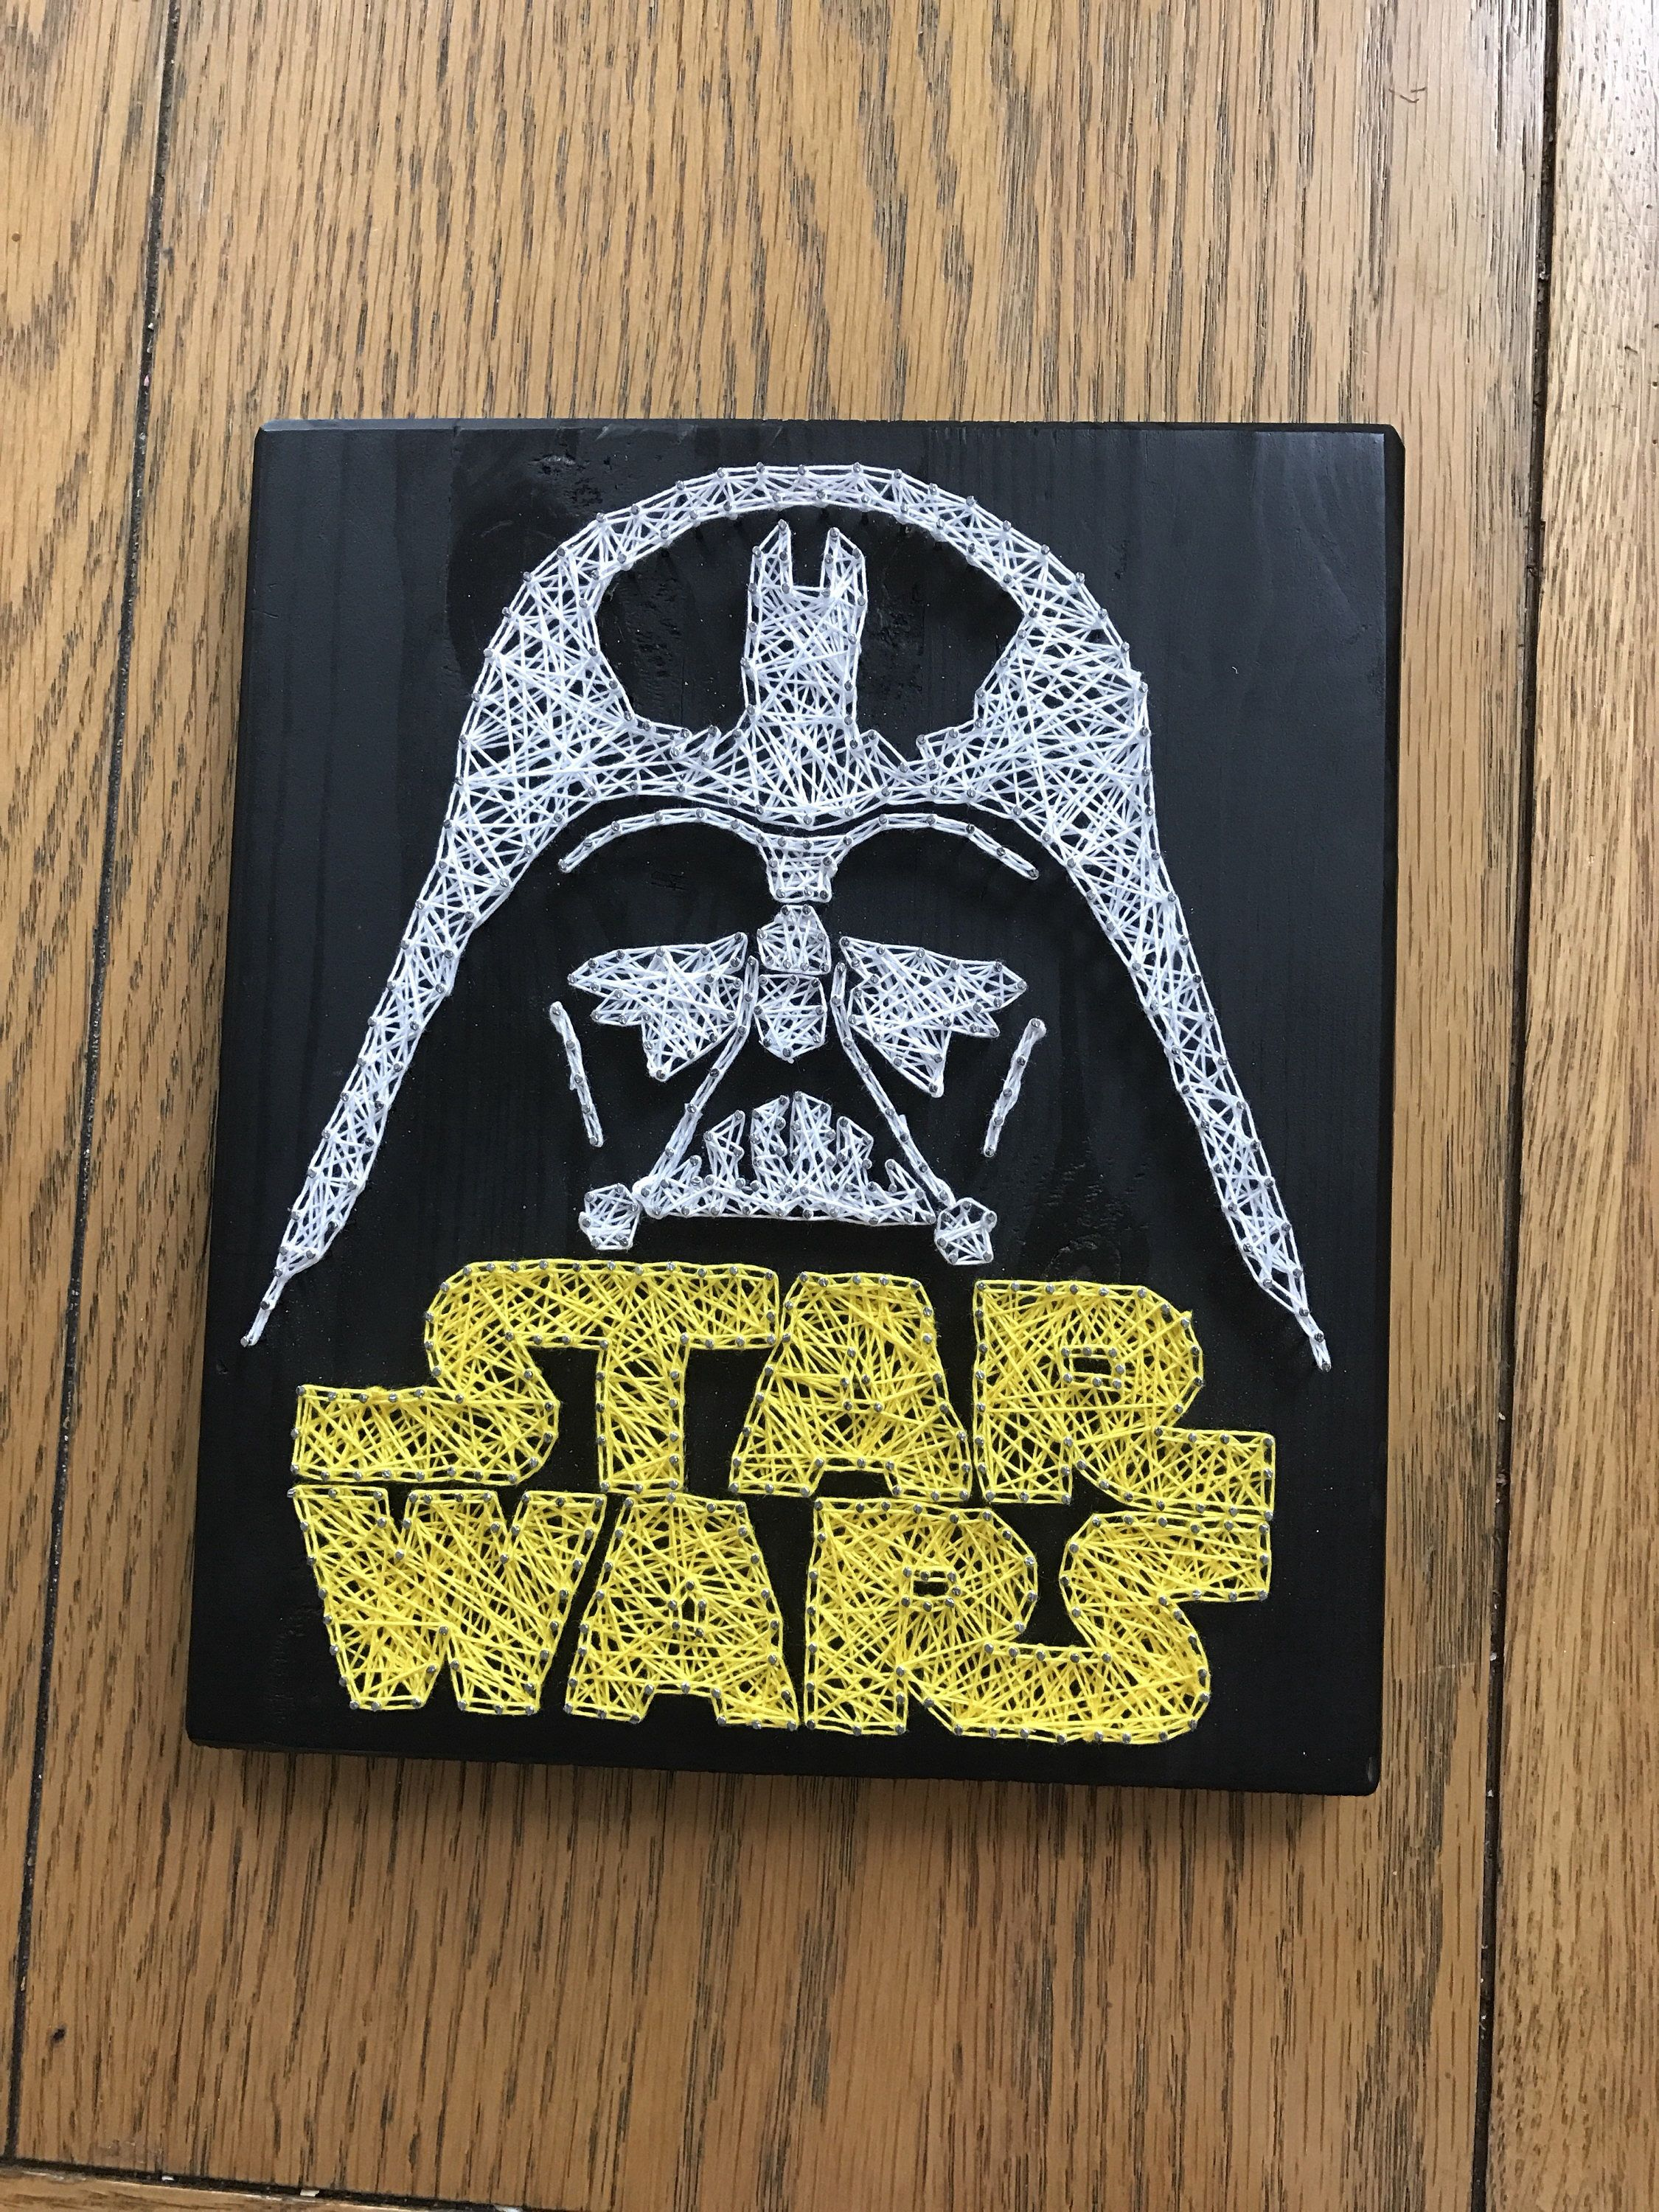 Star Wars and Darth Vader String Art. Cotton gift bag included ...